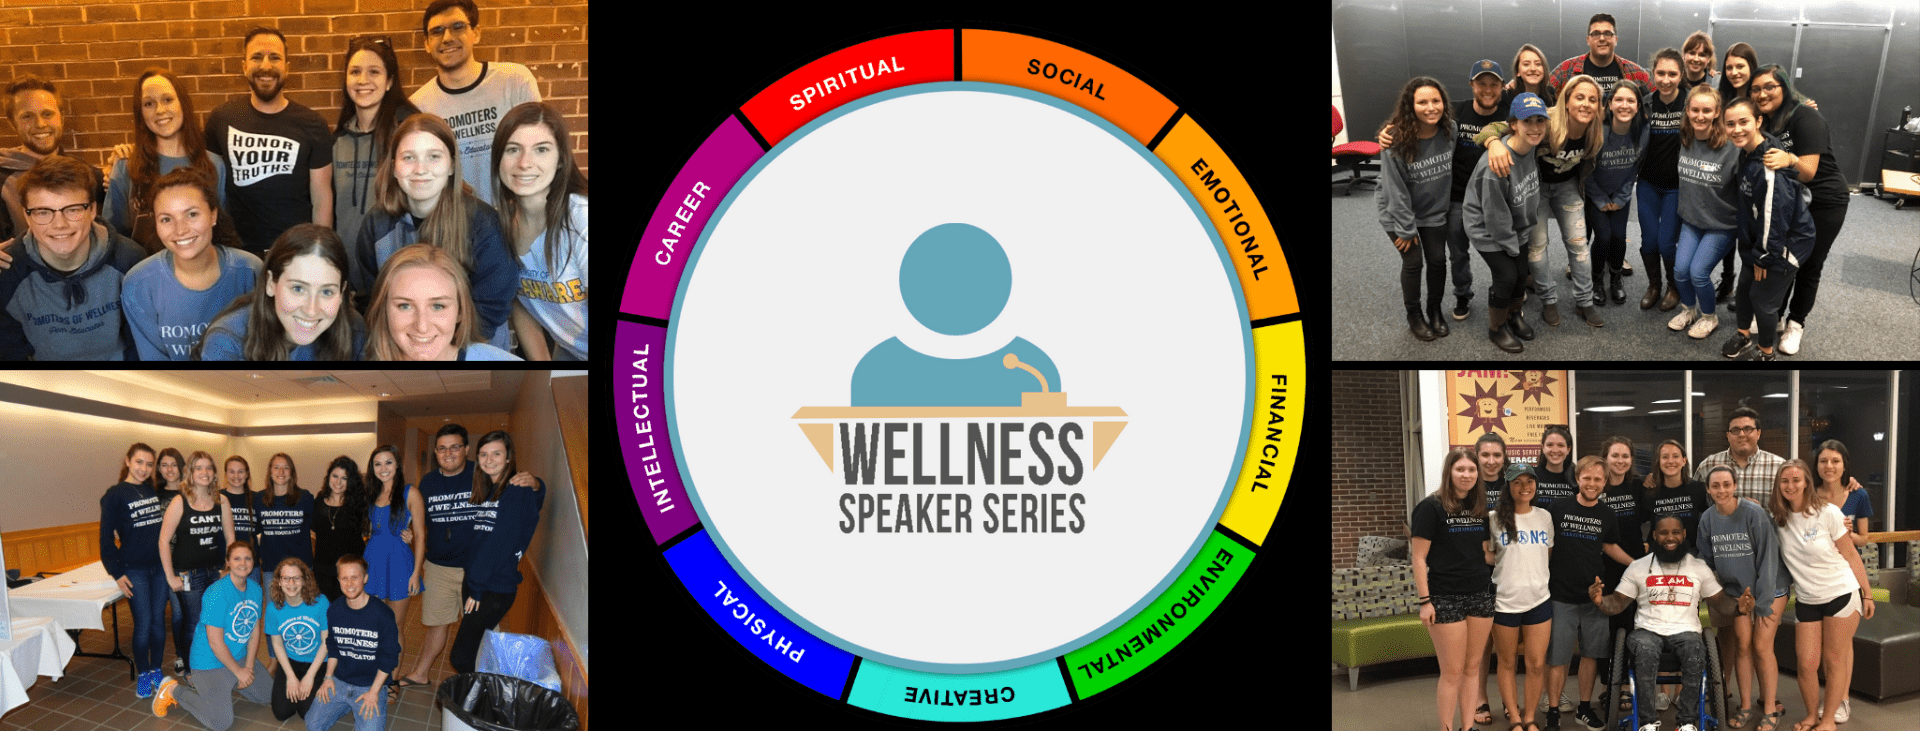 collage of photos with UD students and WSS speaker as well as WSS badge featuring the wellness wheel with 9 wellness dimensions and a speaker glyph at a podium